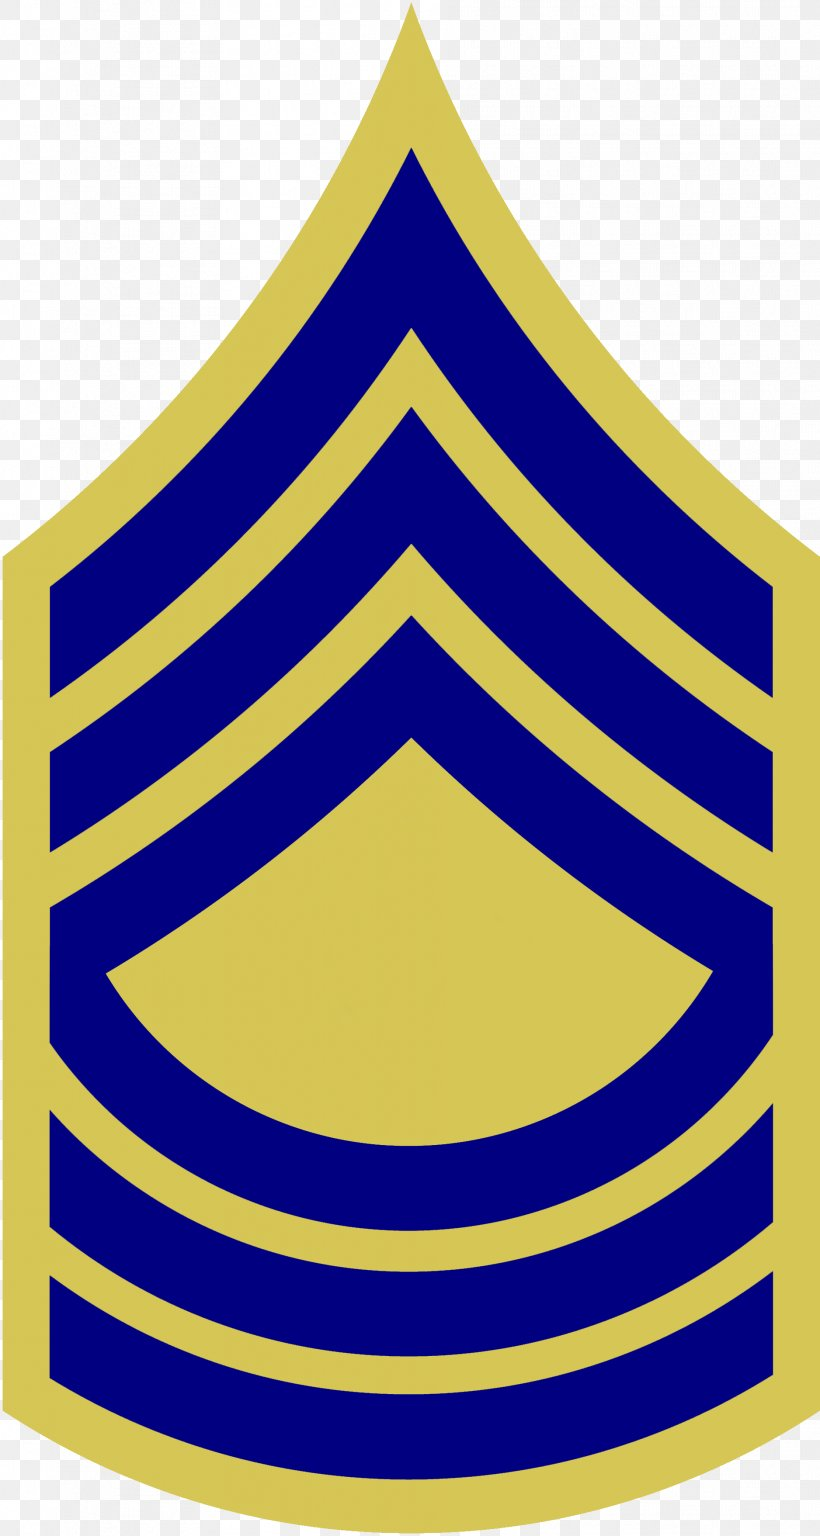 Staff Sergeant First Sergeant Sergeant First Class Sergeant Major, PNG, 1876x3516px, Sergeant, Area, Army, Brand, Chevron Download Free